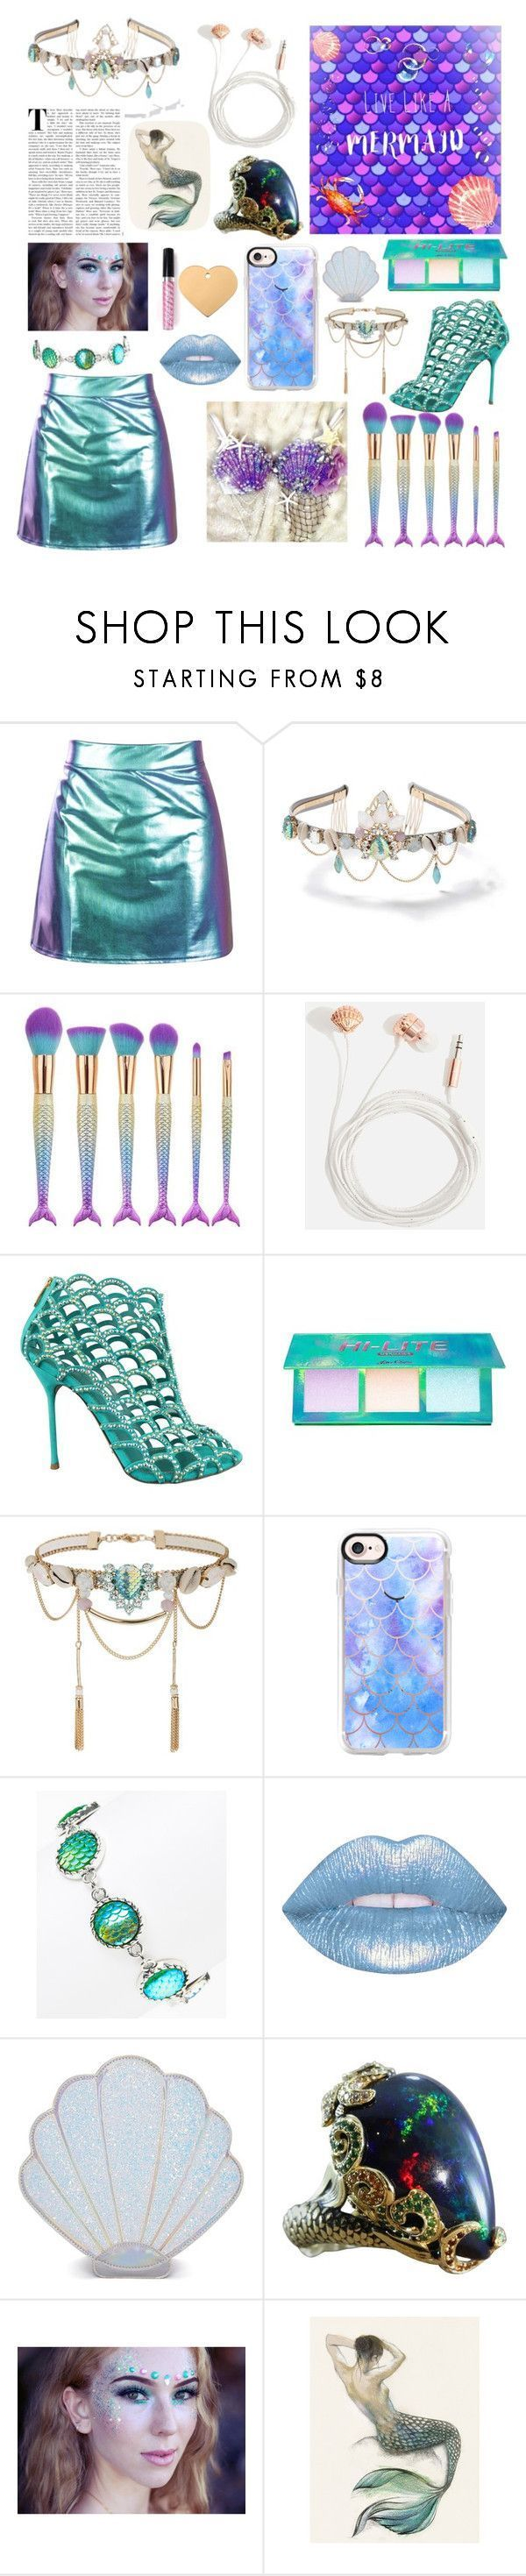 """Live like a Mermaid"" by queenietillaih ❤ liked on Polyvore featuring Miss Selfridge, Skinnydip, Sergio Rossi, Lime Crime, Casetify, Bubbly Bows, Sugar Thrillz and Mermaid Salon #sergiorossimermaid"